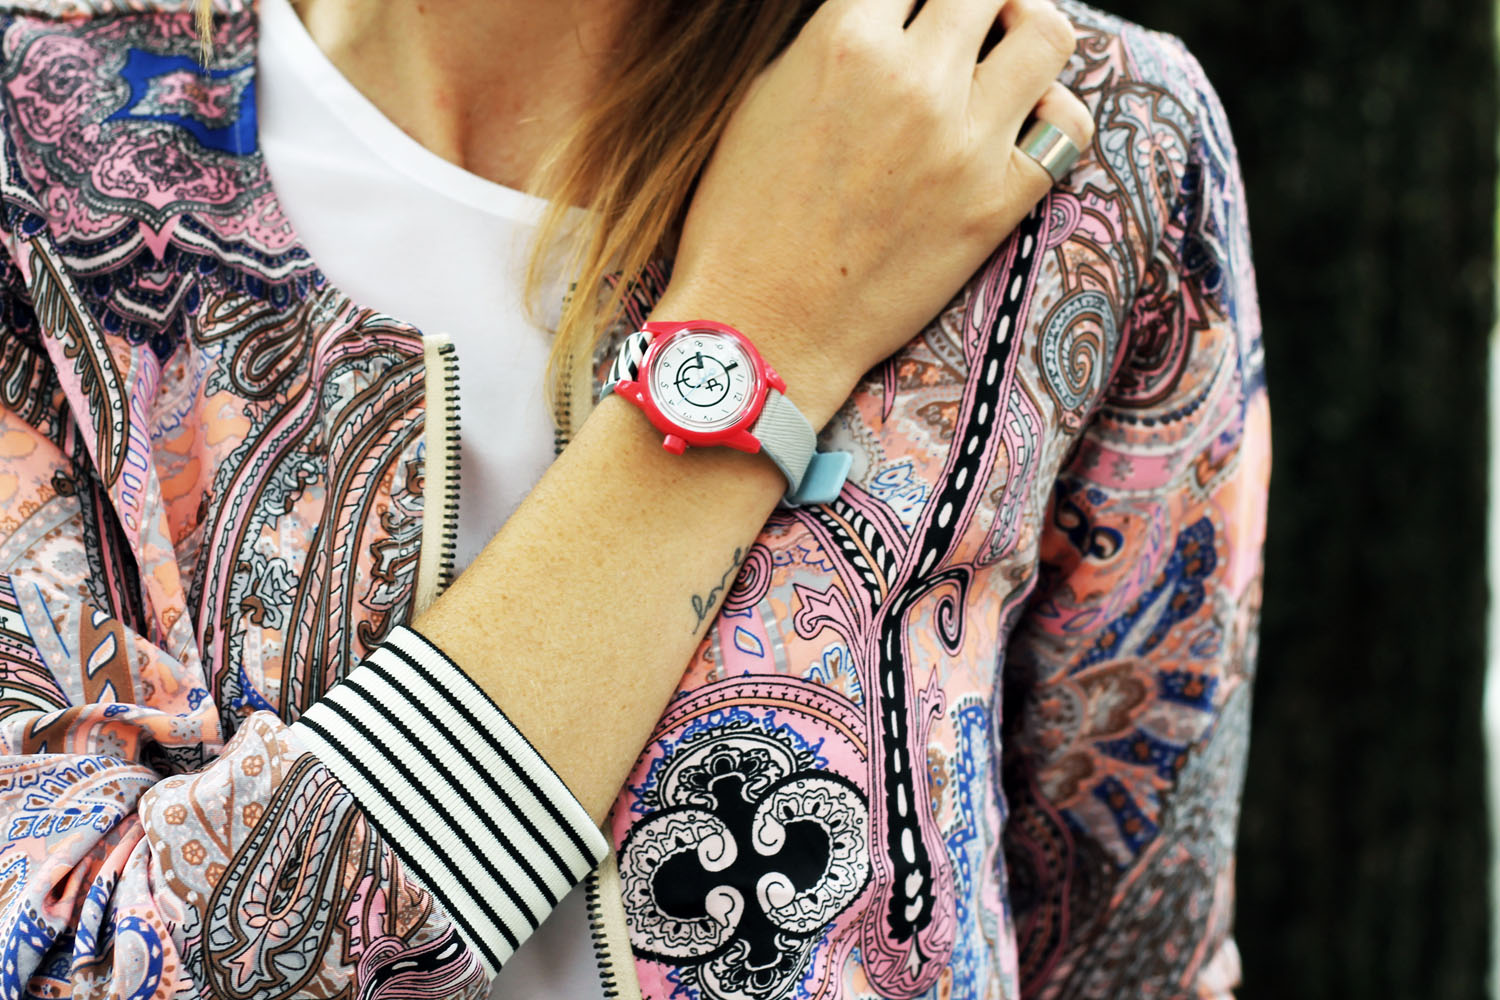 6-orologio-smile-solar-francesca-focarini-fashion-blogger